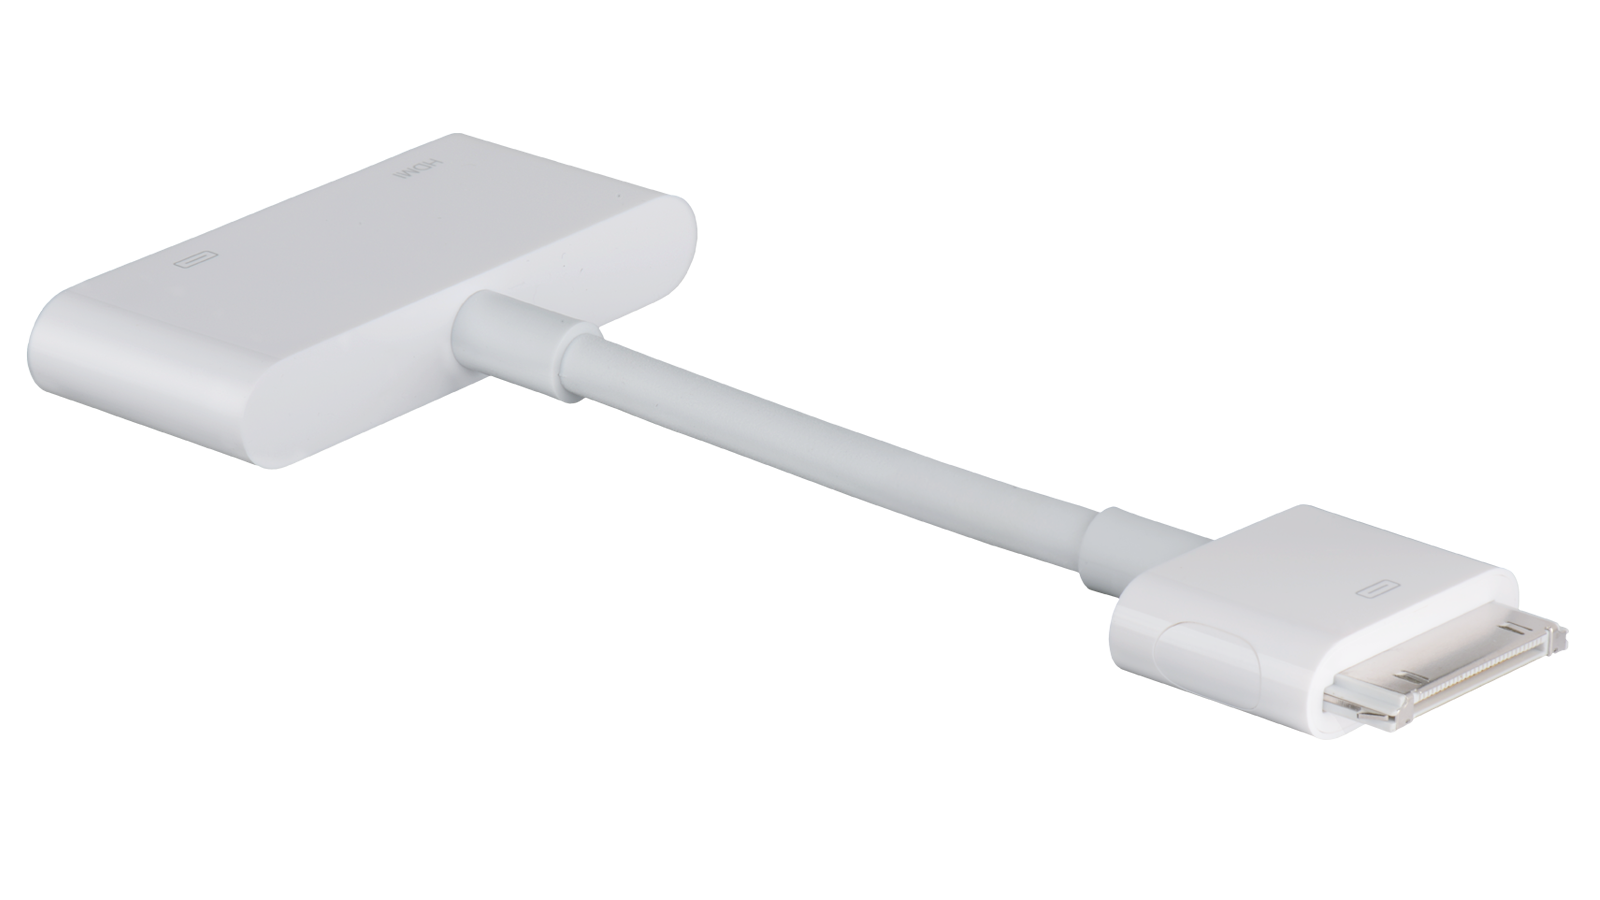 Liberty AV Solutions Security Clamp for Attaching Apple ... - photo#5